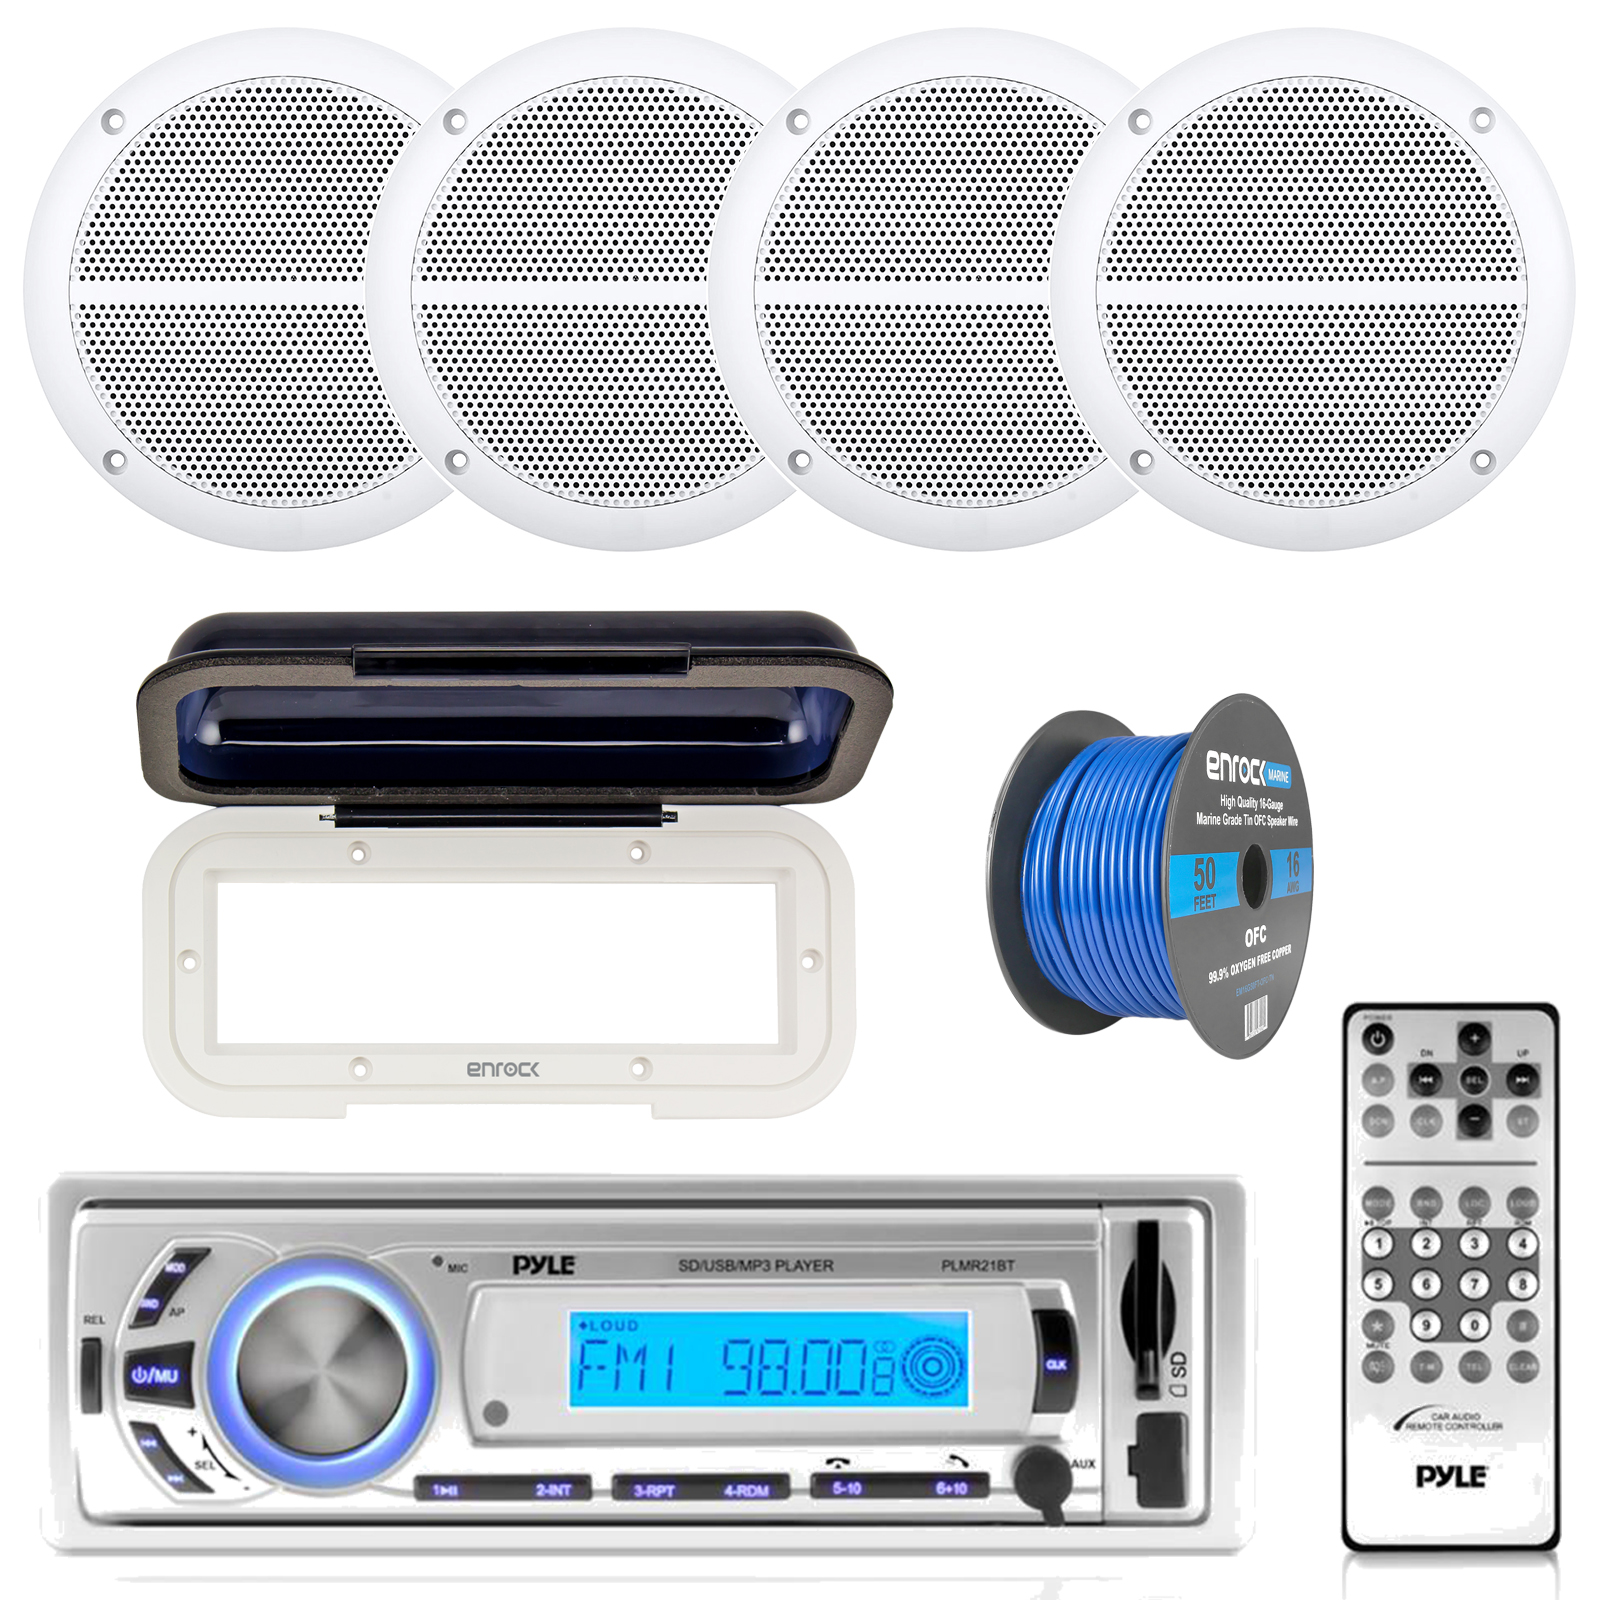 "Pyle PLMR21BT Marine Boat USB/SD/MP3 Bluetooth Stereo Receiver With Waterproof Cover Bundle Combo With 4x Enrock 6.5"" Inch Dual-Cone White Upgarde Audio Coaxial Speakers + Enrock 50Ft 16g Speaker Wire"